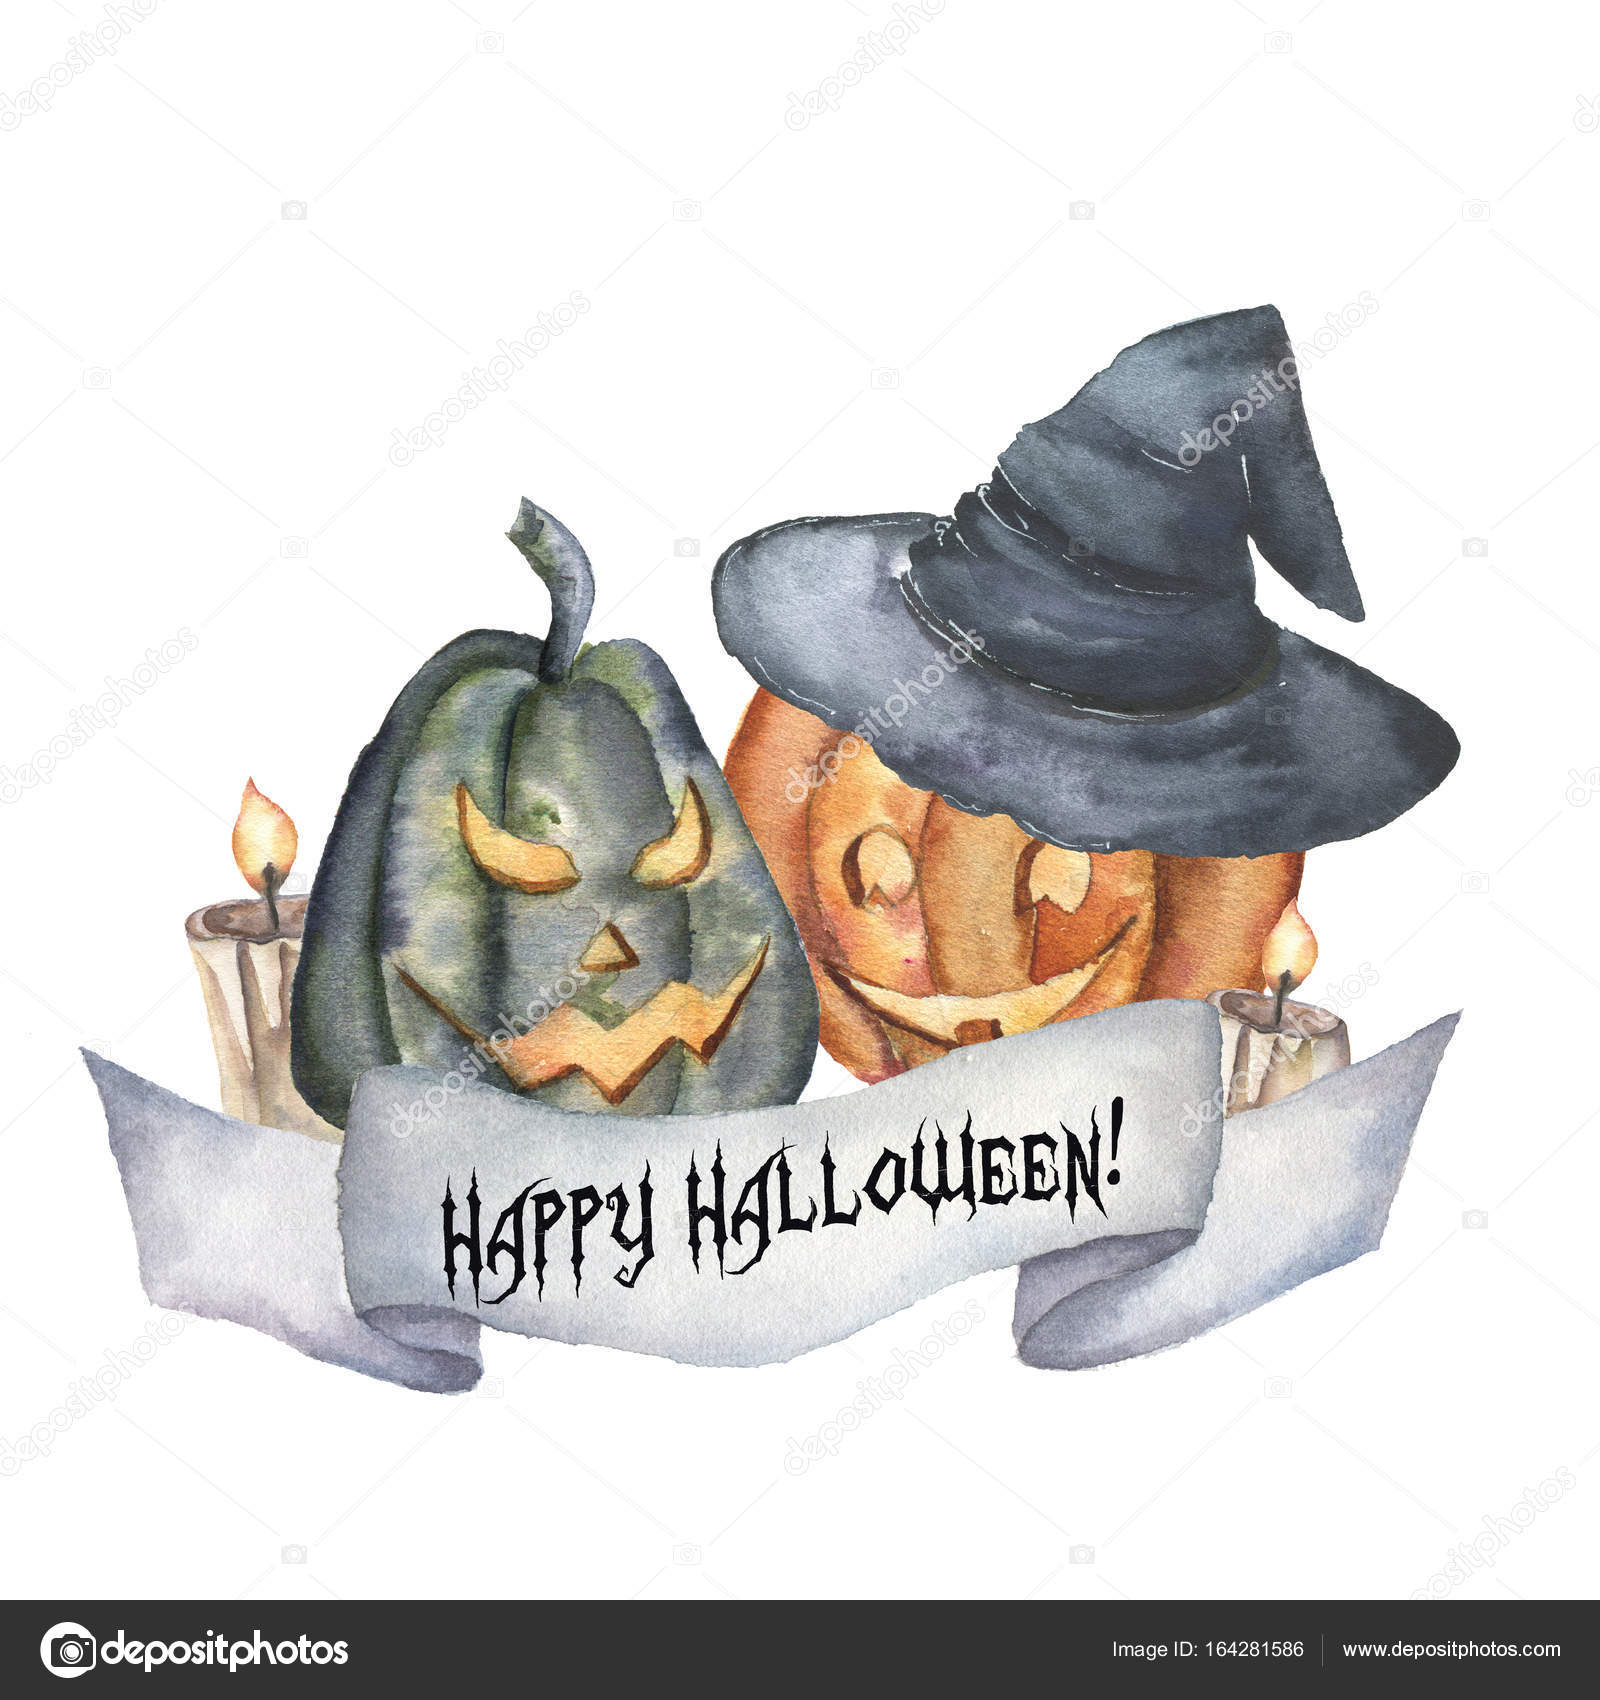 Watercolor Happy Halloween Card With Pumpkin. Hand Painted Carved Faces  Pumpkins With Candle And Witch